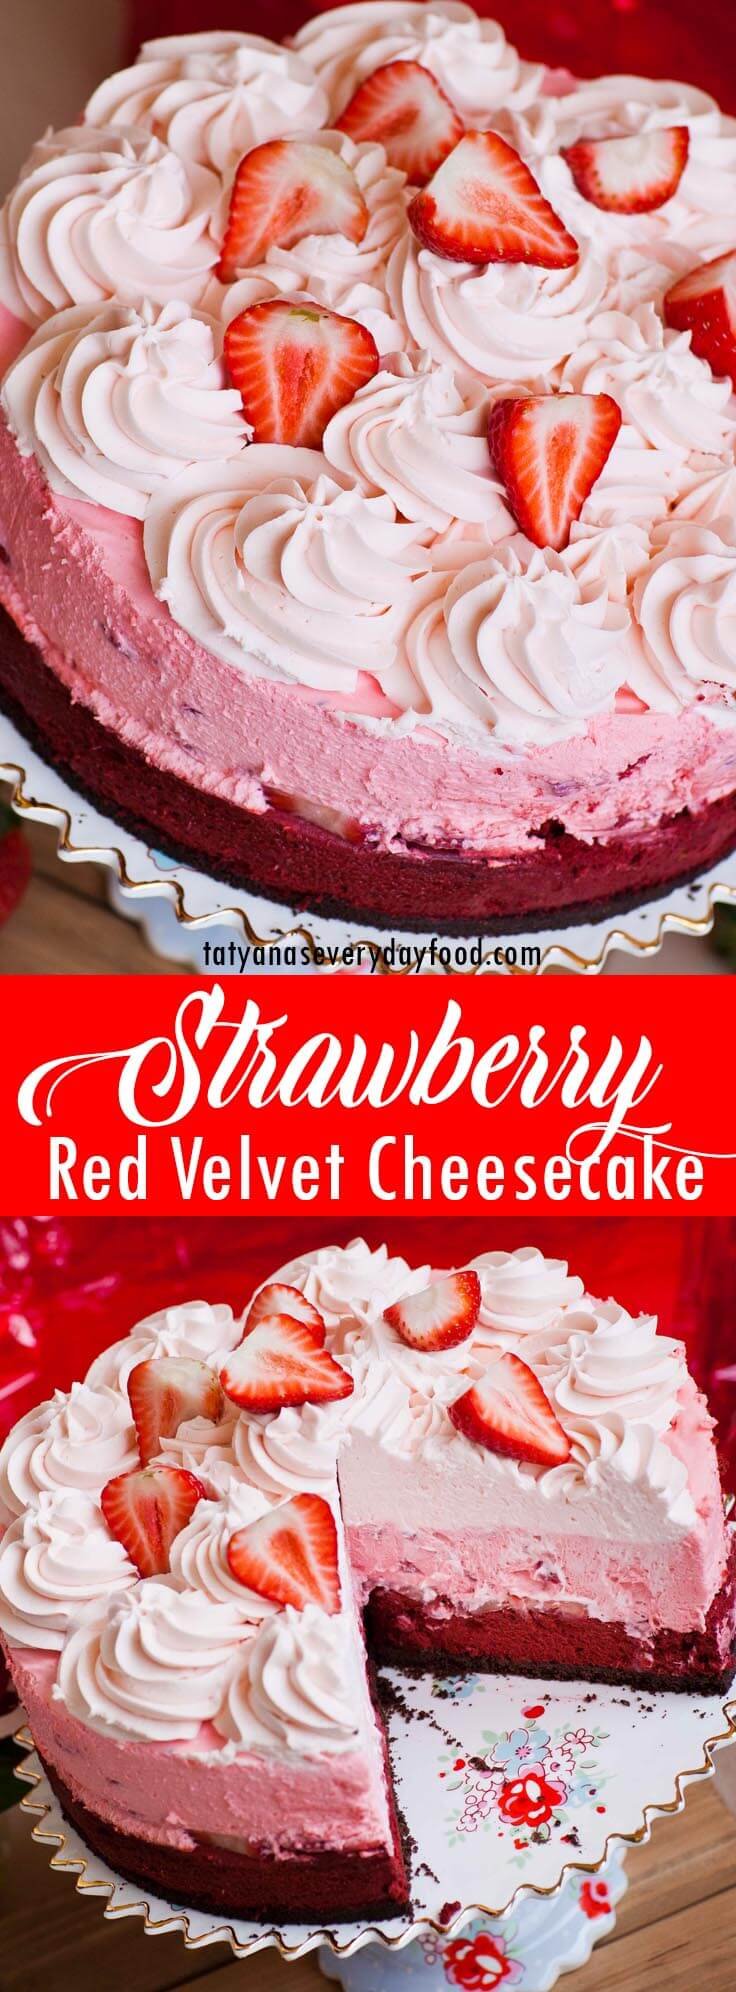 Red Velvet Strawberry Cheesecake video recipe